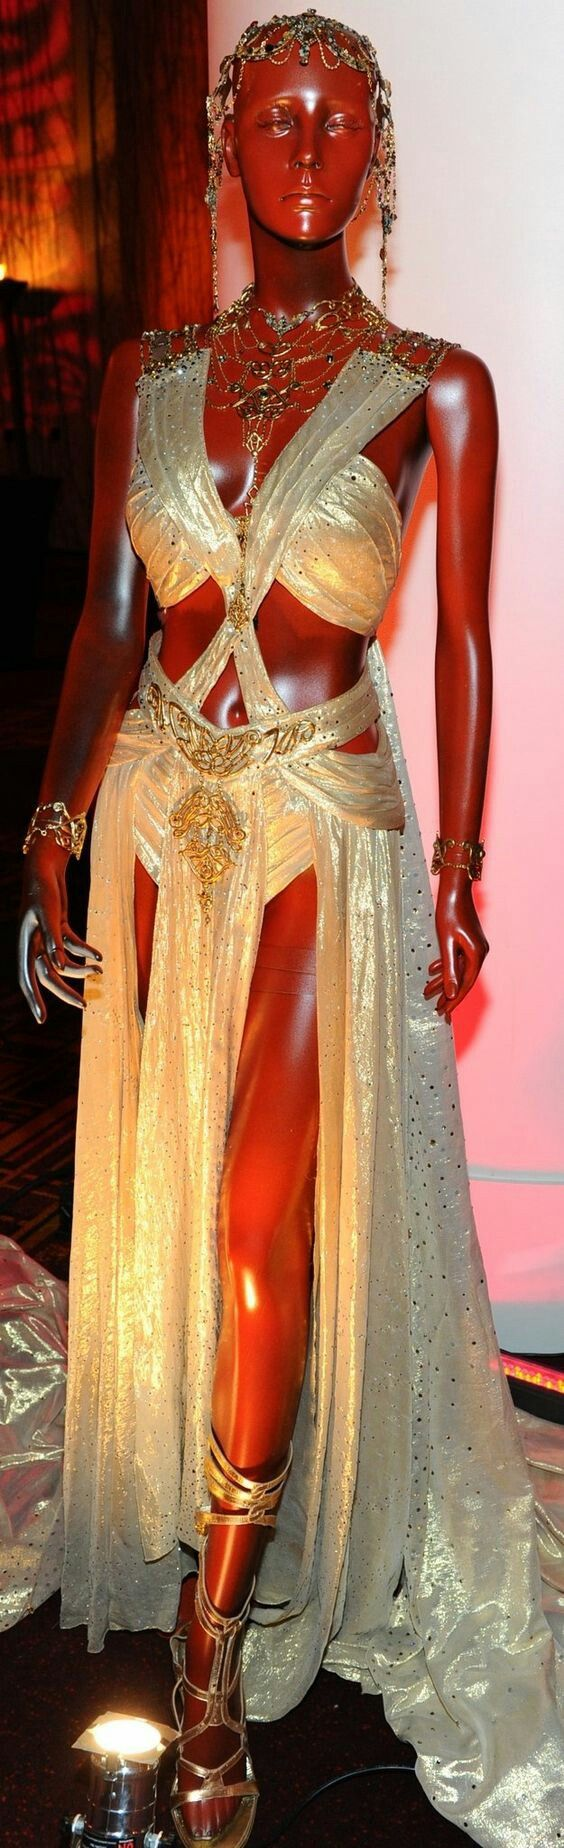 I believe this was actually Dejah Thoris's wedding gown from the 'John Carter' moving, so...